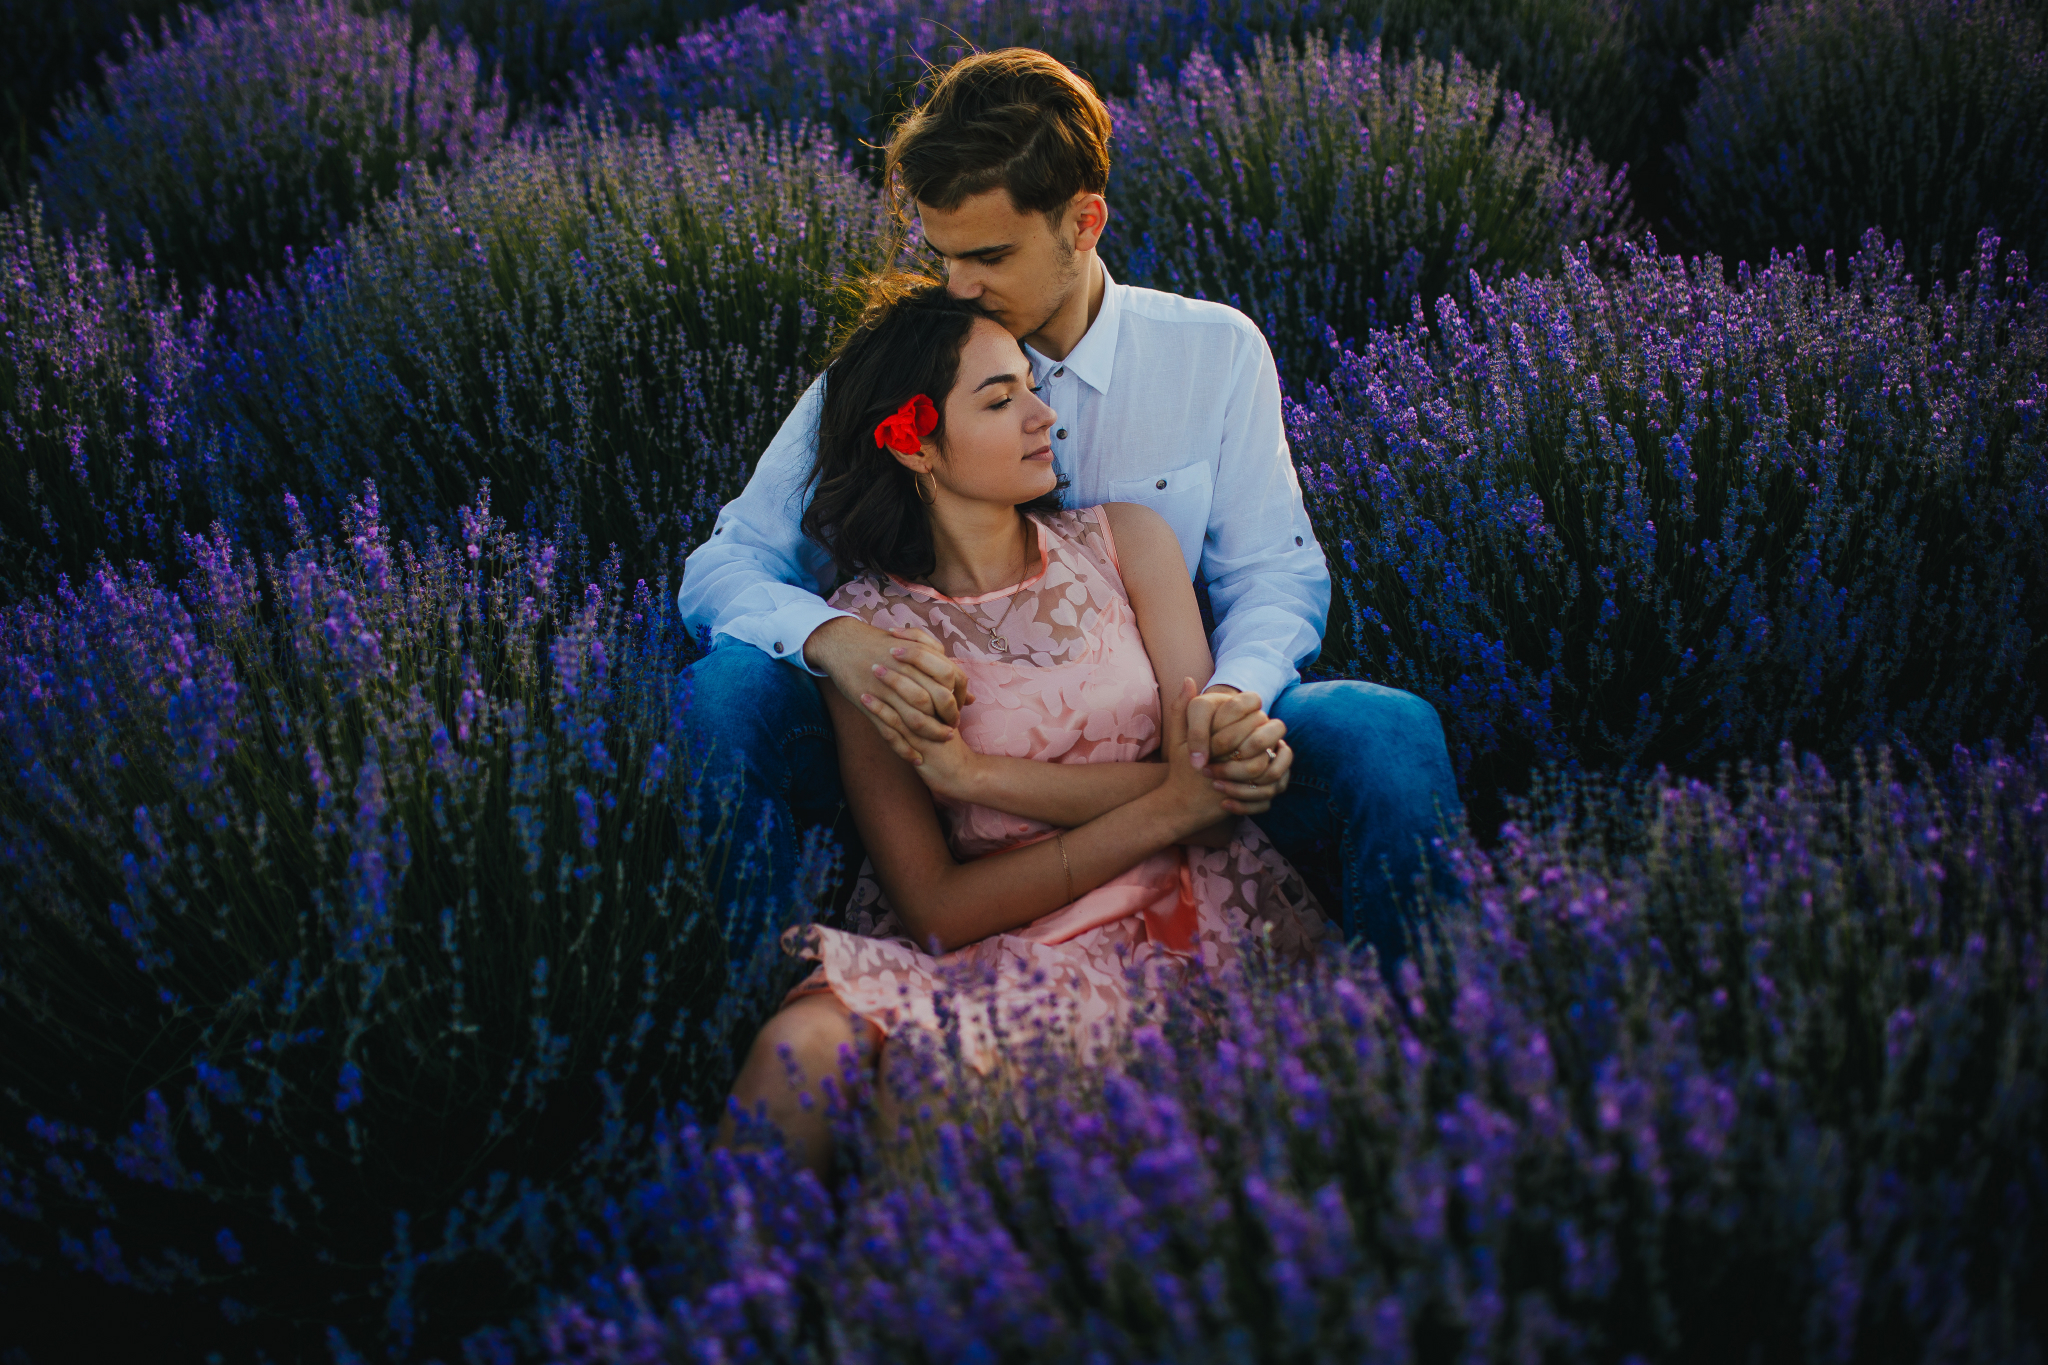 san diego wedding   photographer | slightly smiling woman in pink floral dress leaning on blonde   man's lap kissing her forehead in lavender fields